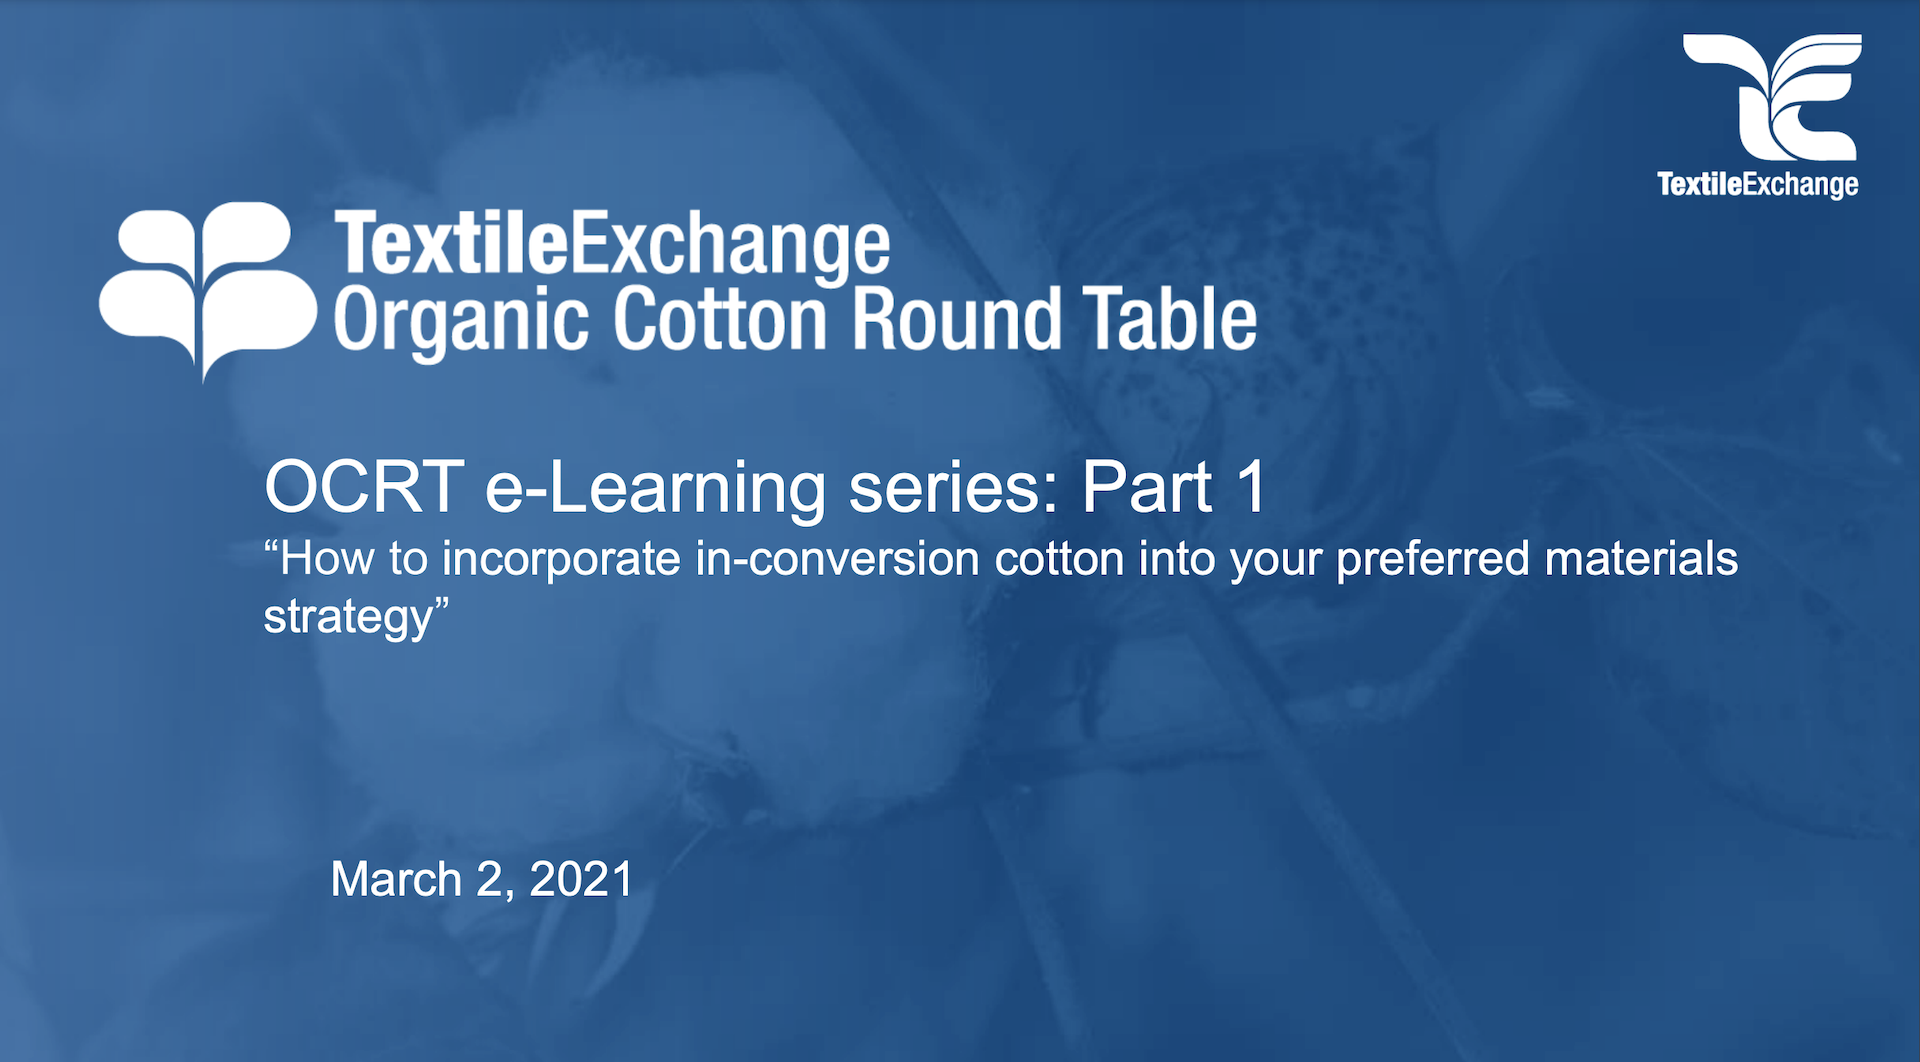 OCRT e-Learning series: Part 1: How to Incorporate in Conversion Cotton into Your Preferred Materials Strategy